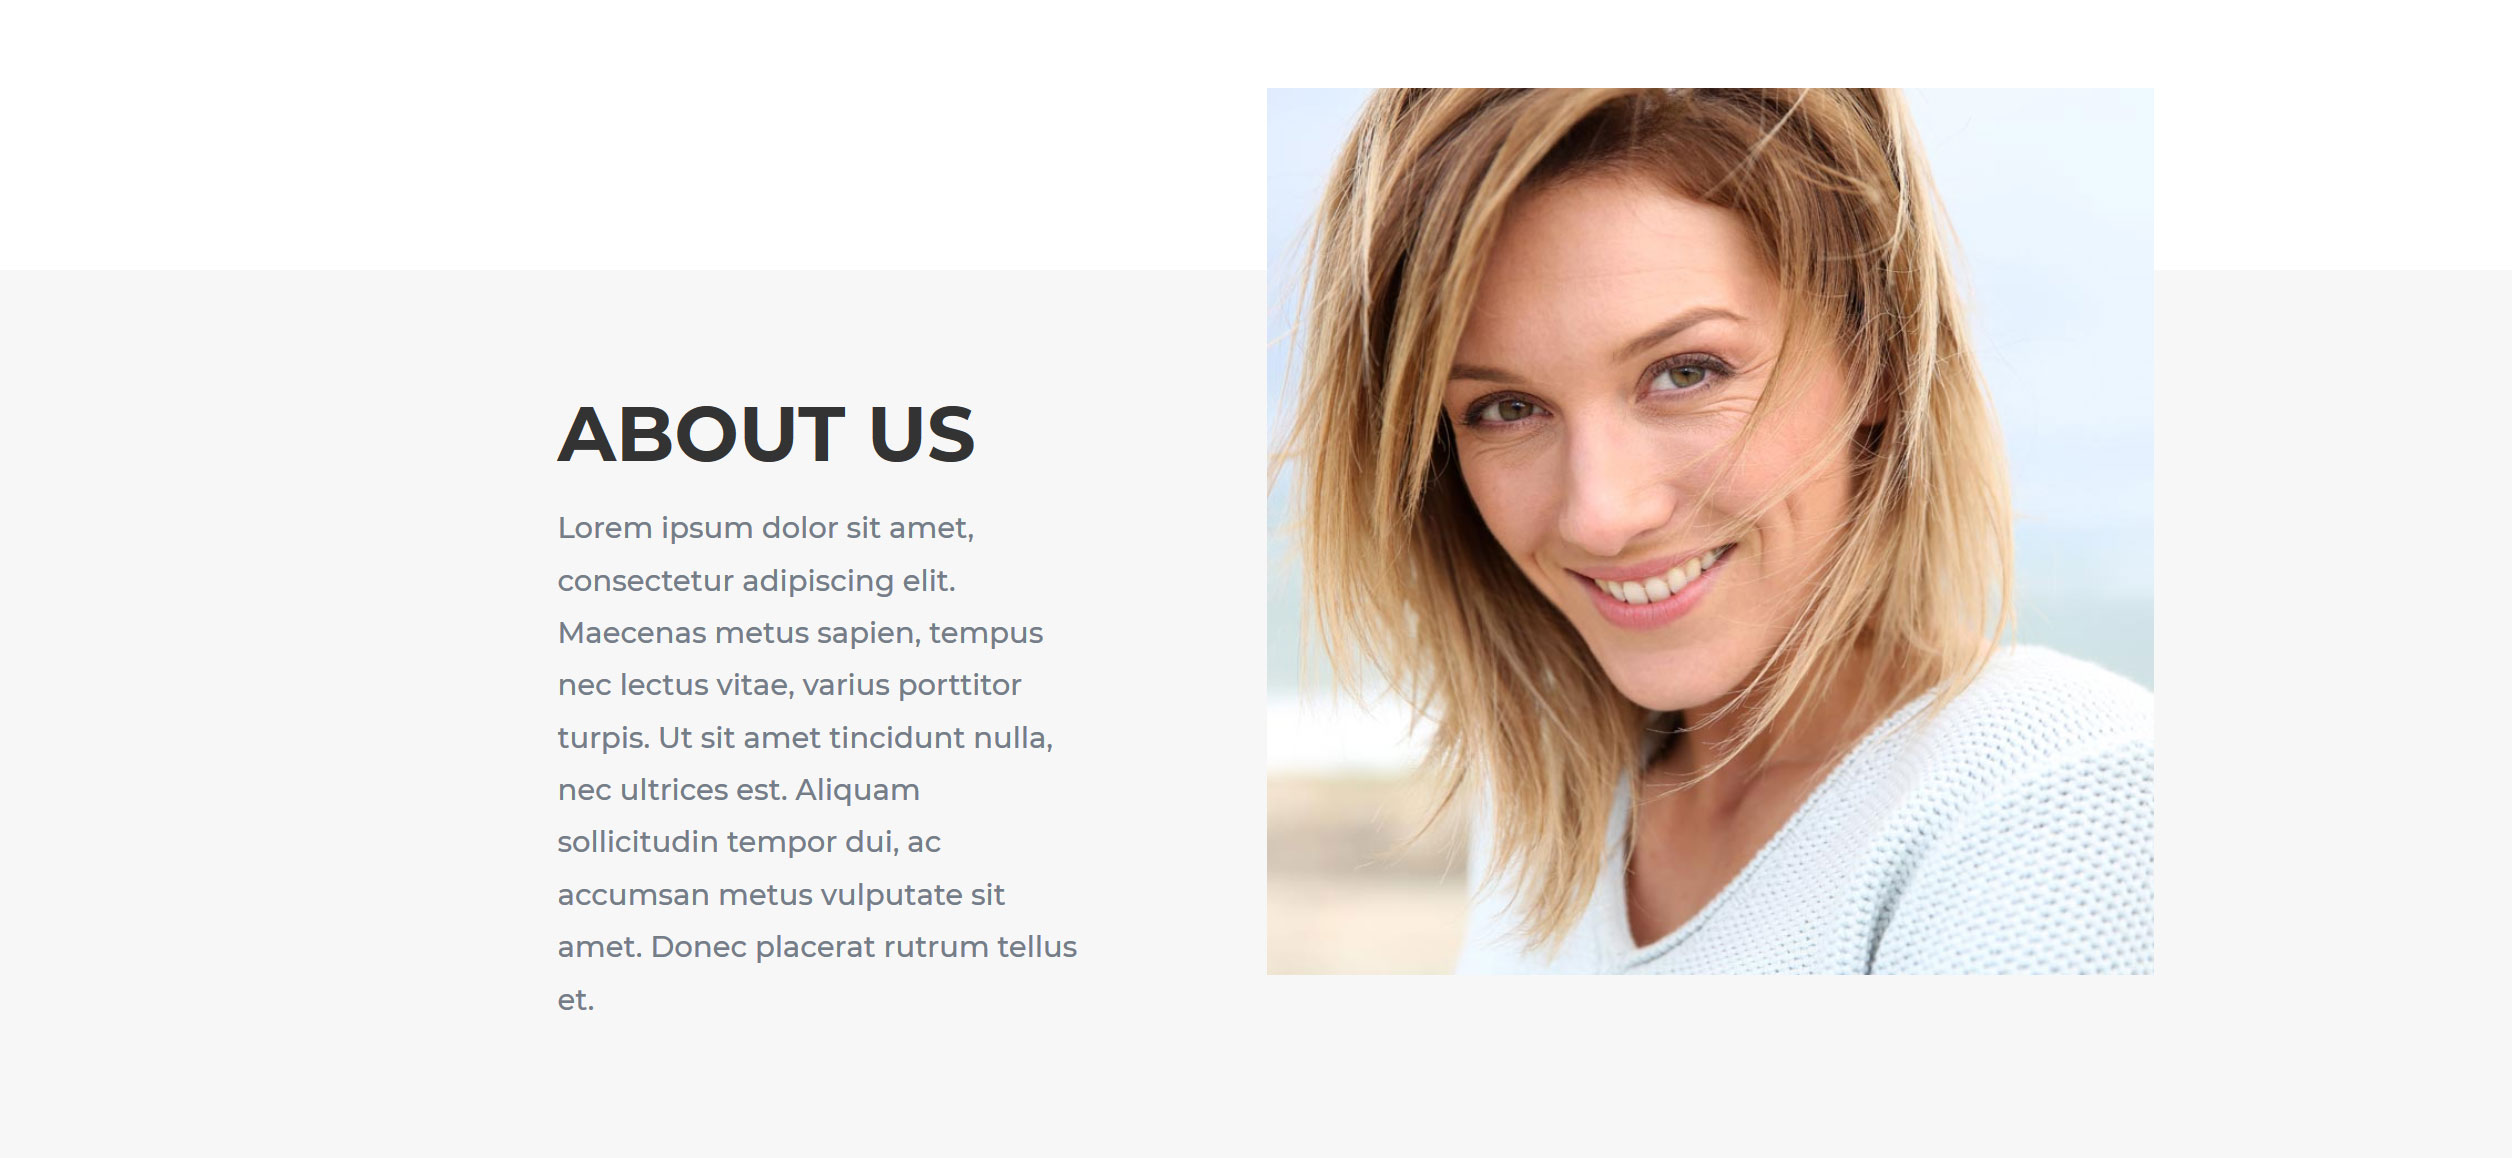 Website for Hairdressers v1 - About Info